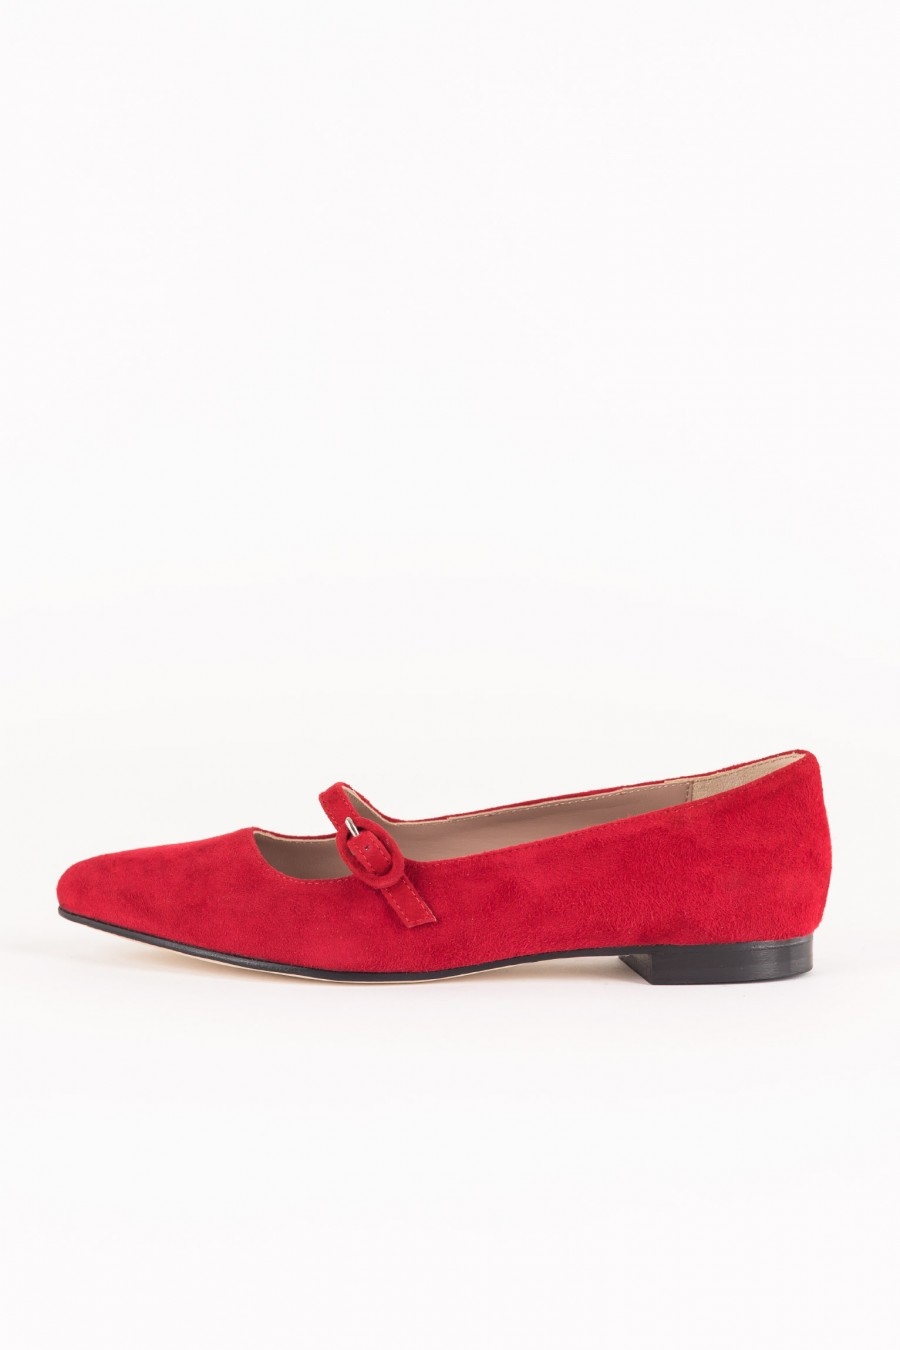 Red pointy flats